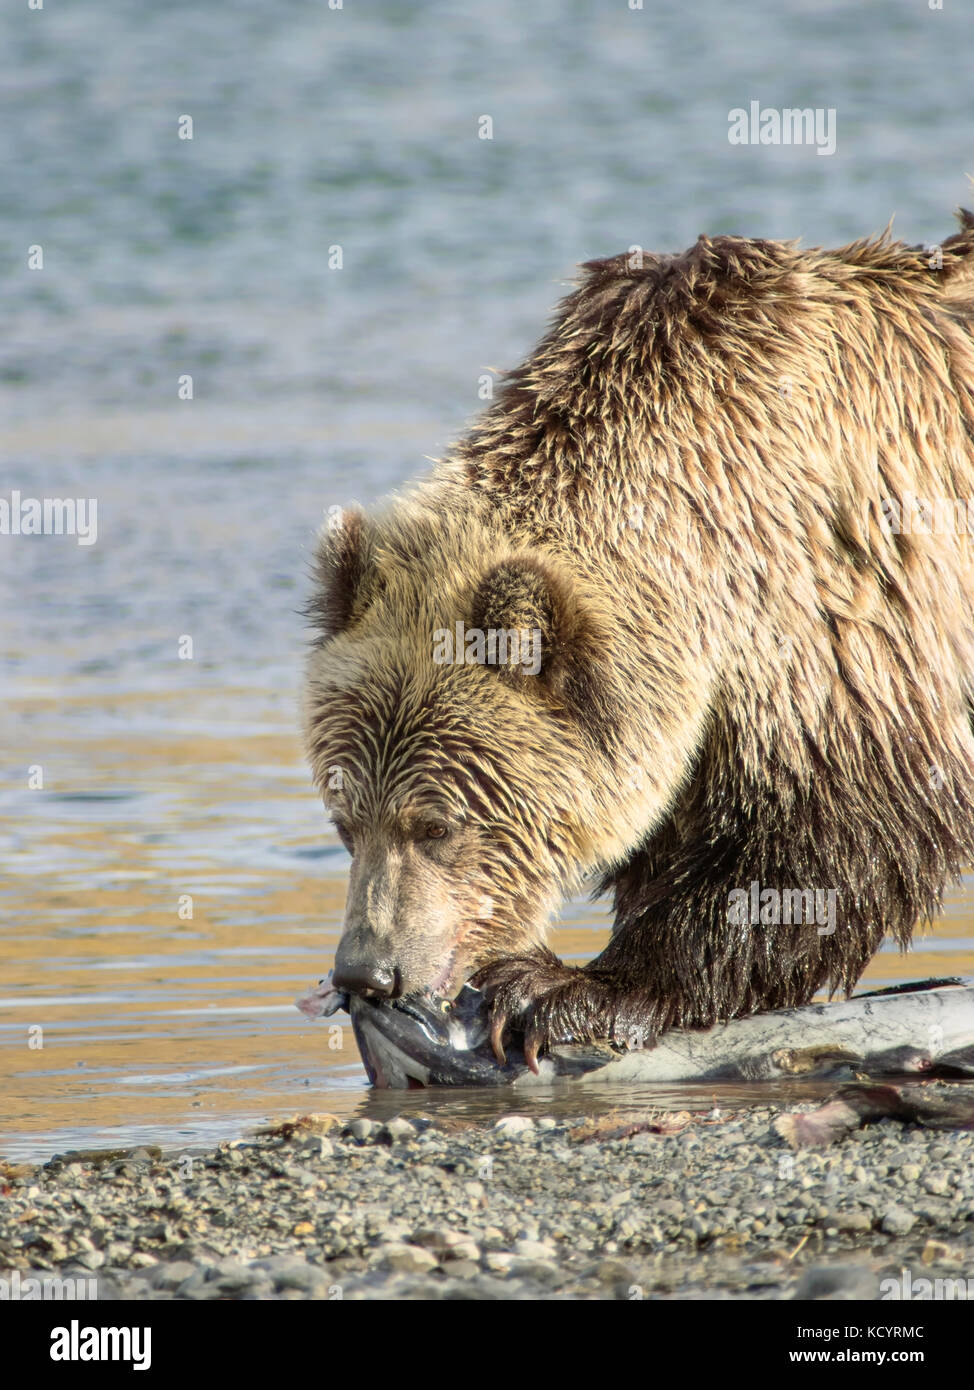 Grizzly Bear (Ursus arctos horribilis), Adult, on waters edge of a salmon stream with Spring (Chinook, Tyee, King) - Stock Image